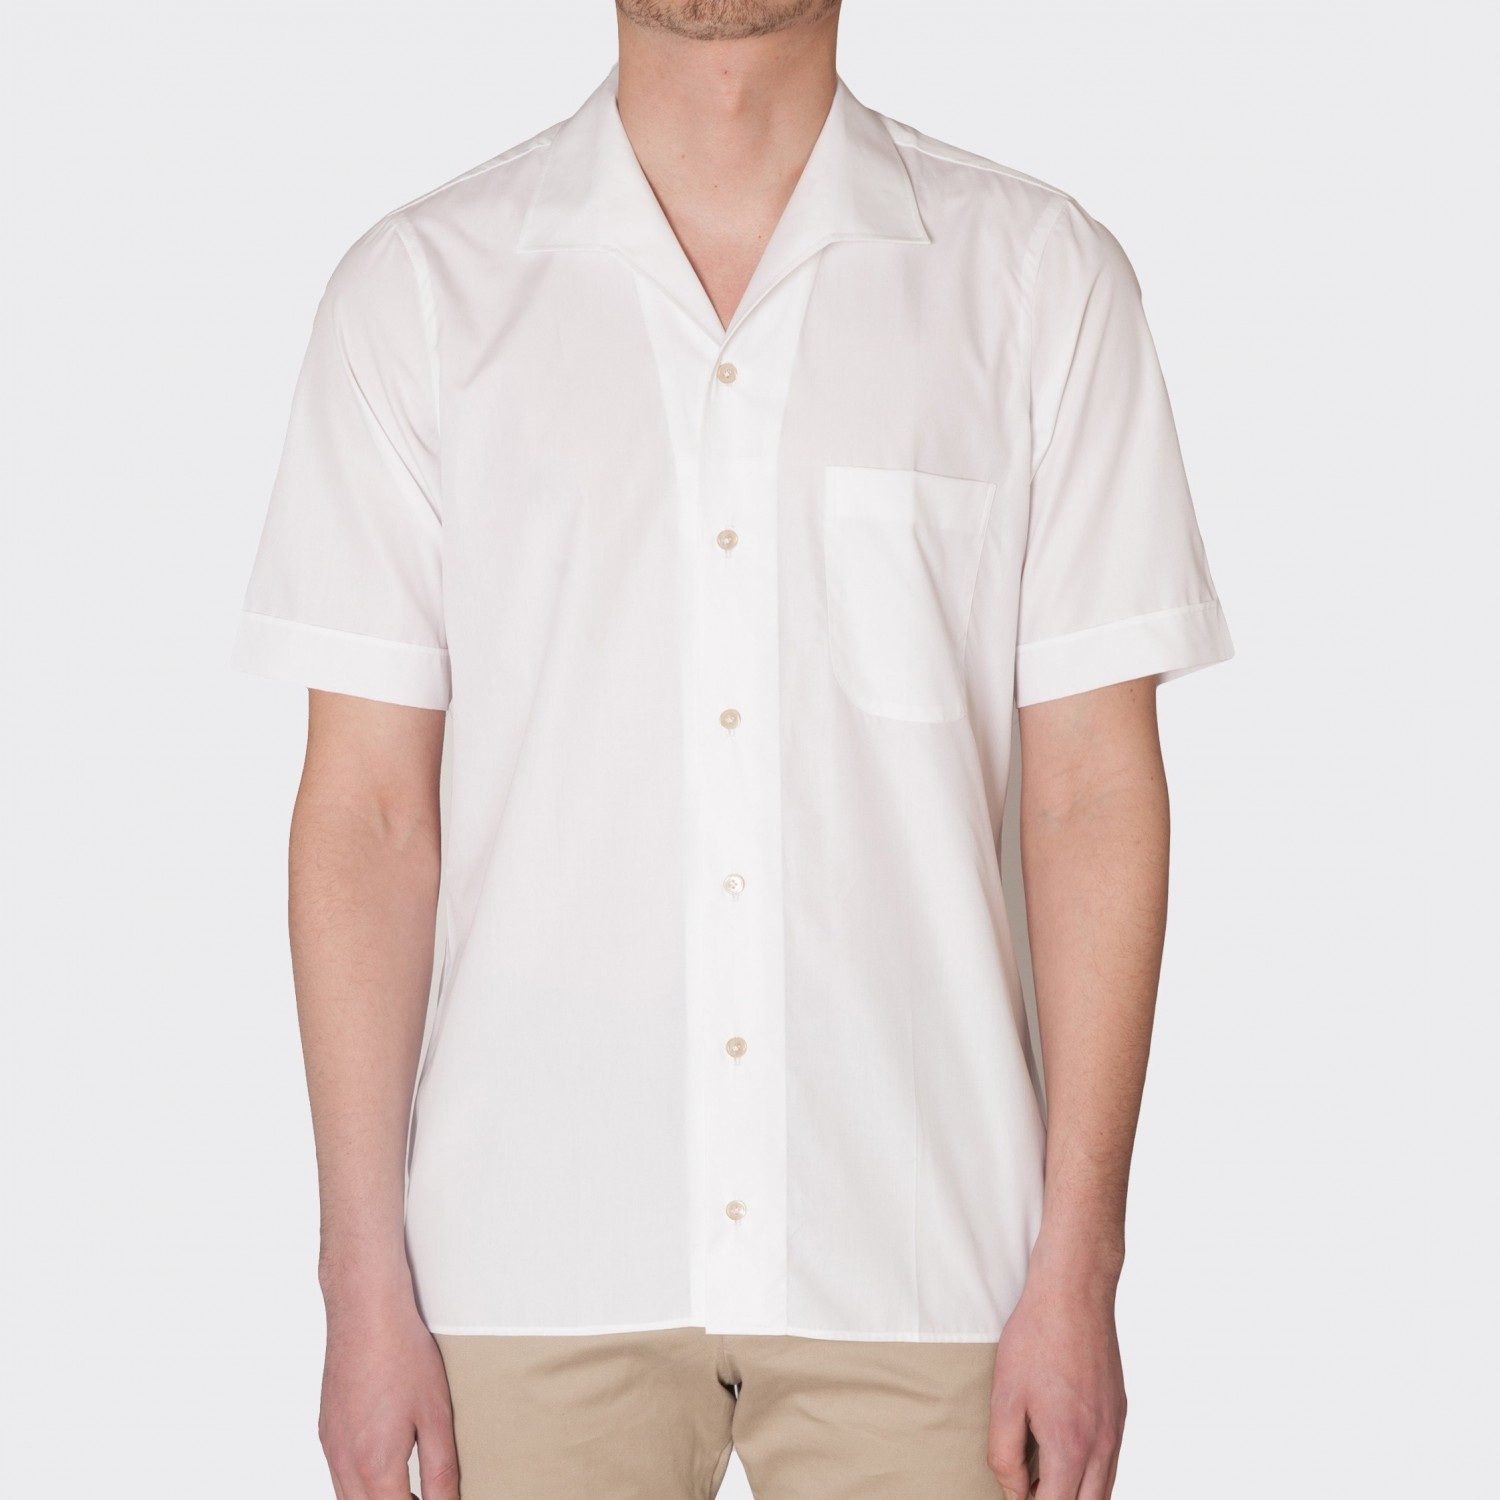 Free Shipping with $50 purchase at shopnow-bqimqrqk.tk Shop shopnow-bqimqrqk.tk for Women's Oxford Dress and Button Down Shirts for every occasion fit to flatter and made to keep their good looks.